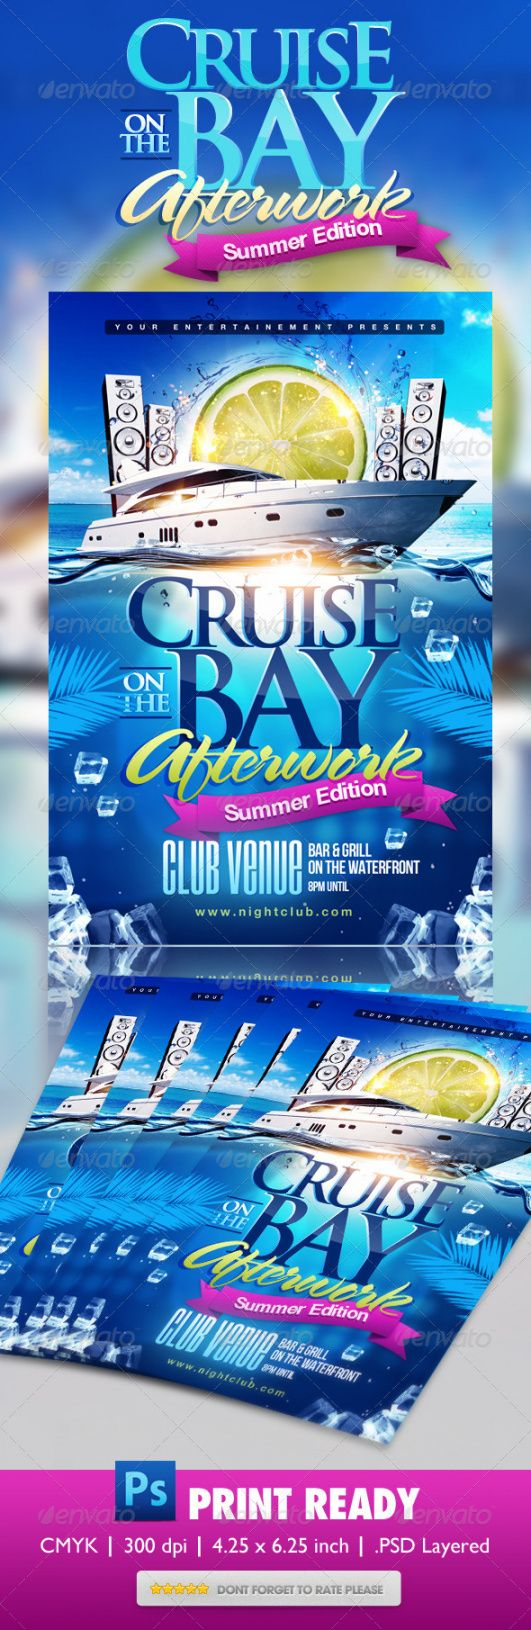 boat flyer graphics designs & templates from graphicriver boat cruise flyer template